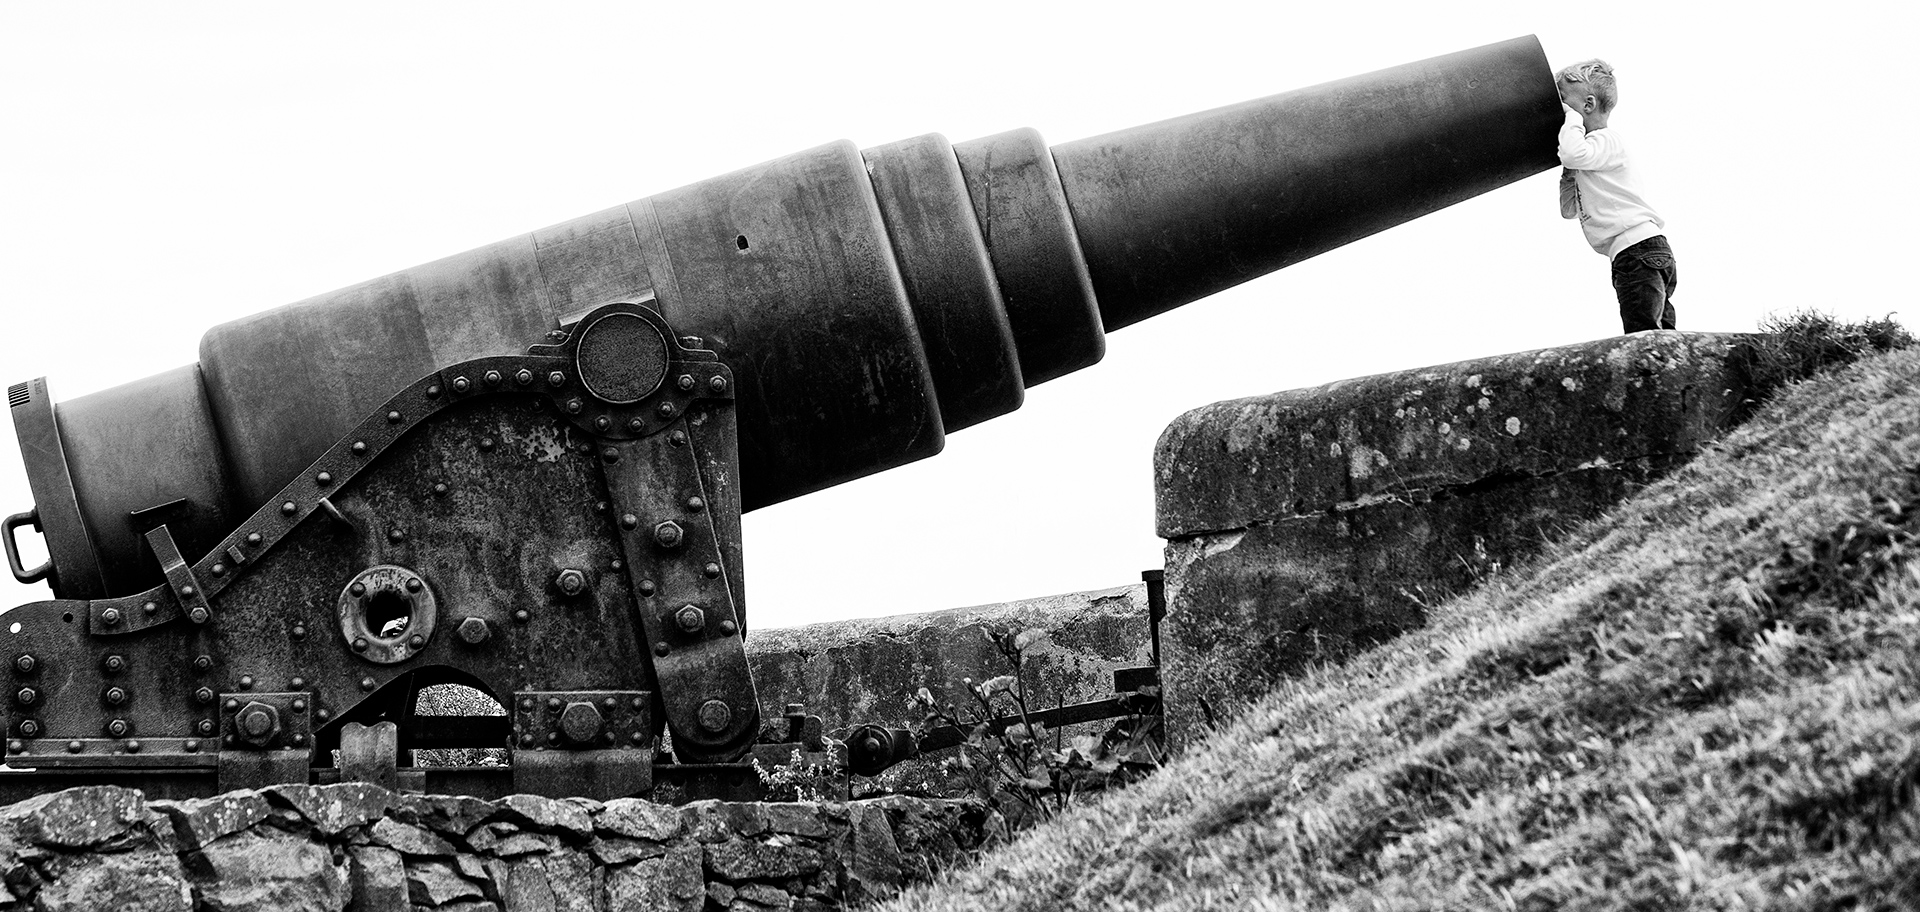 Farewell to Arms, Ernest Hemingway, Suomenlinna, canon, gun, weapon, boy, kid, pacifism, Finland, Suomi